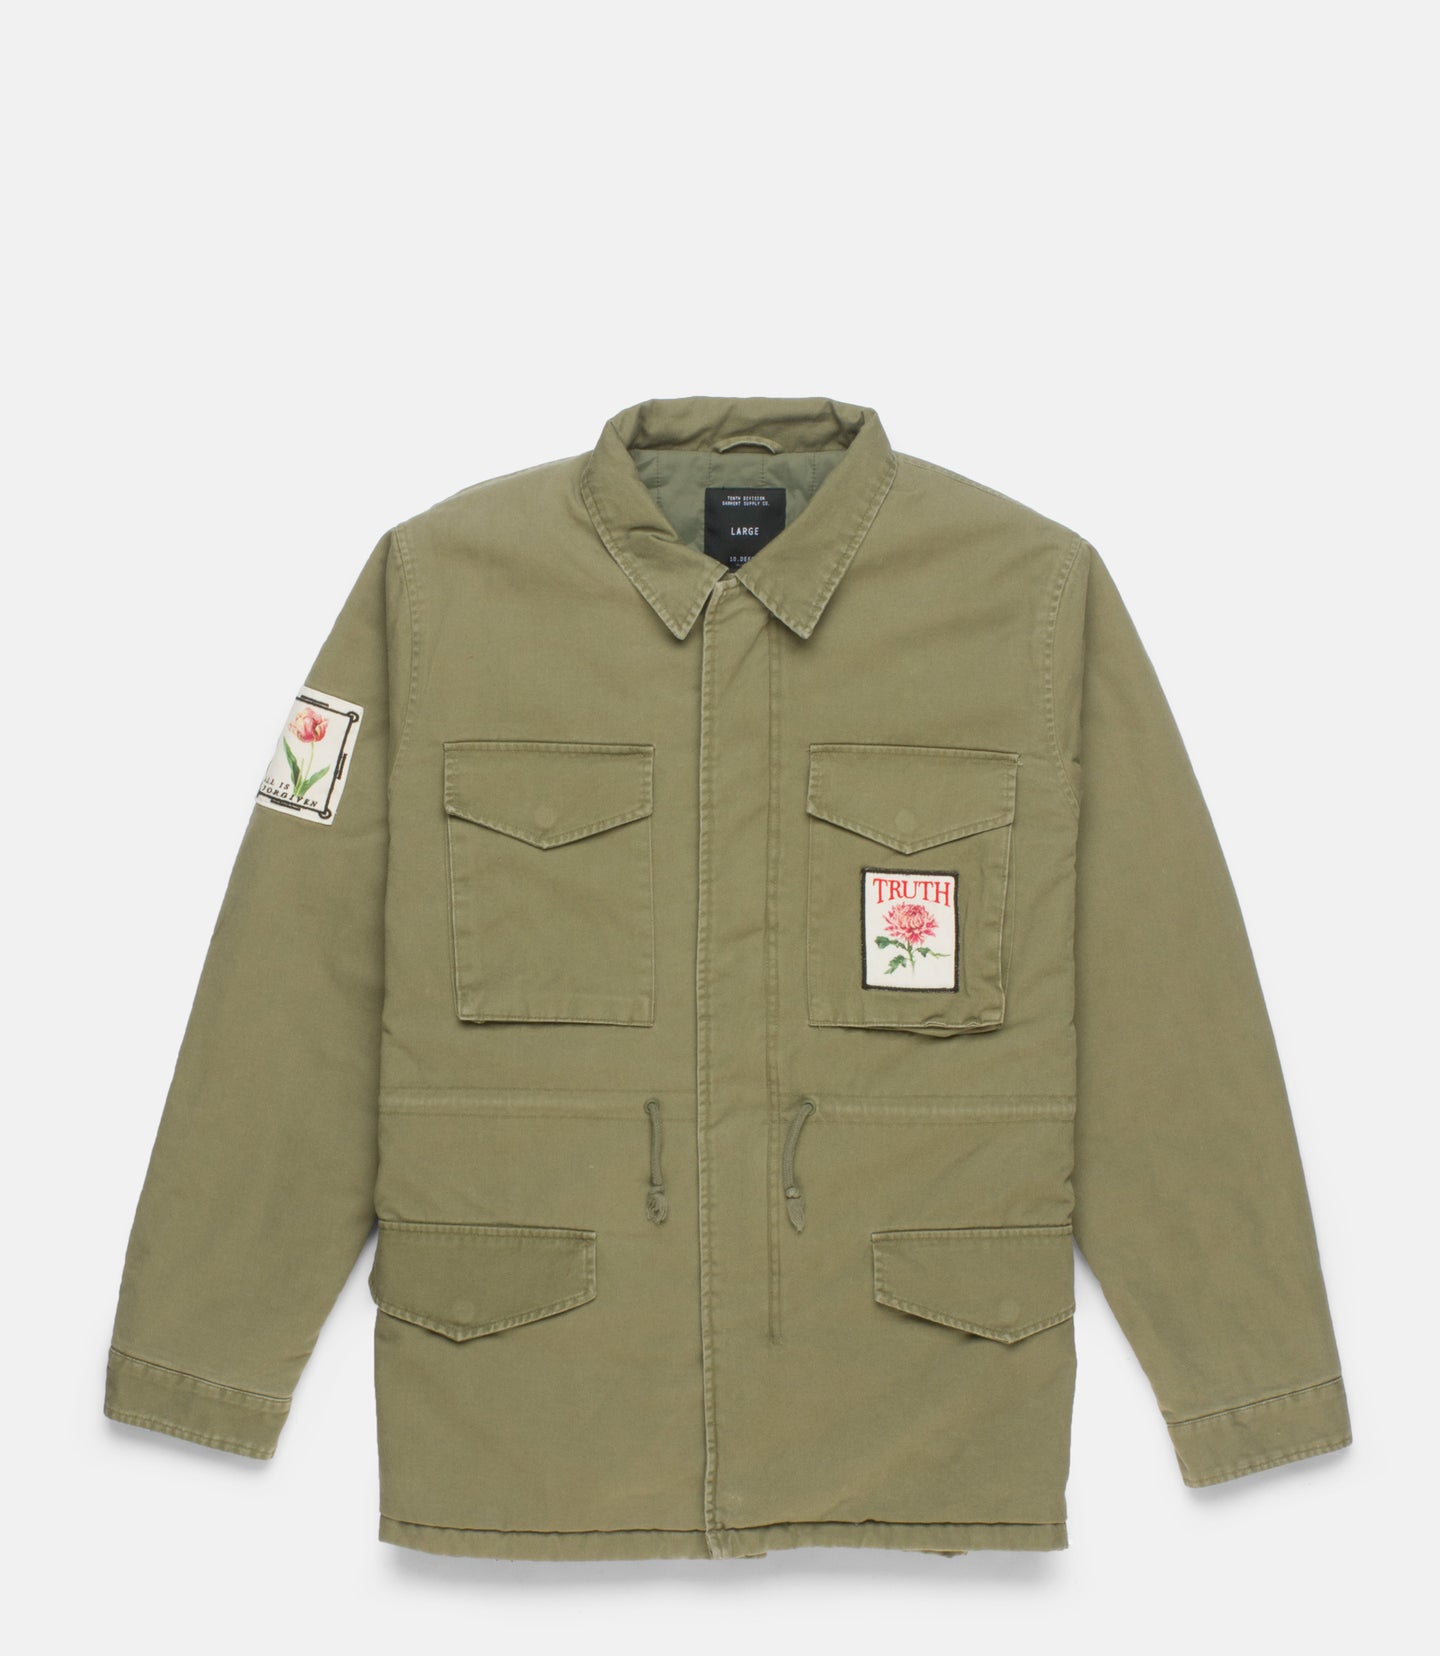 THINKING OF YOU M-65 JACKET - ARMY